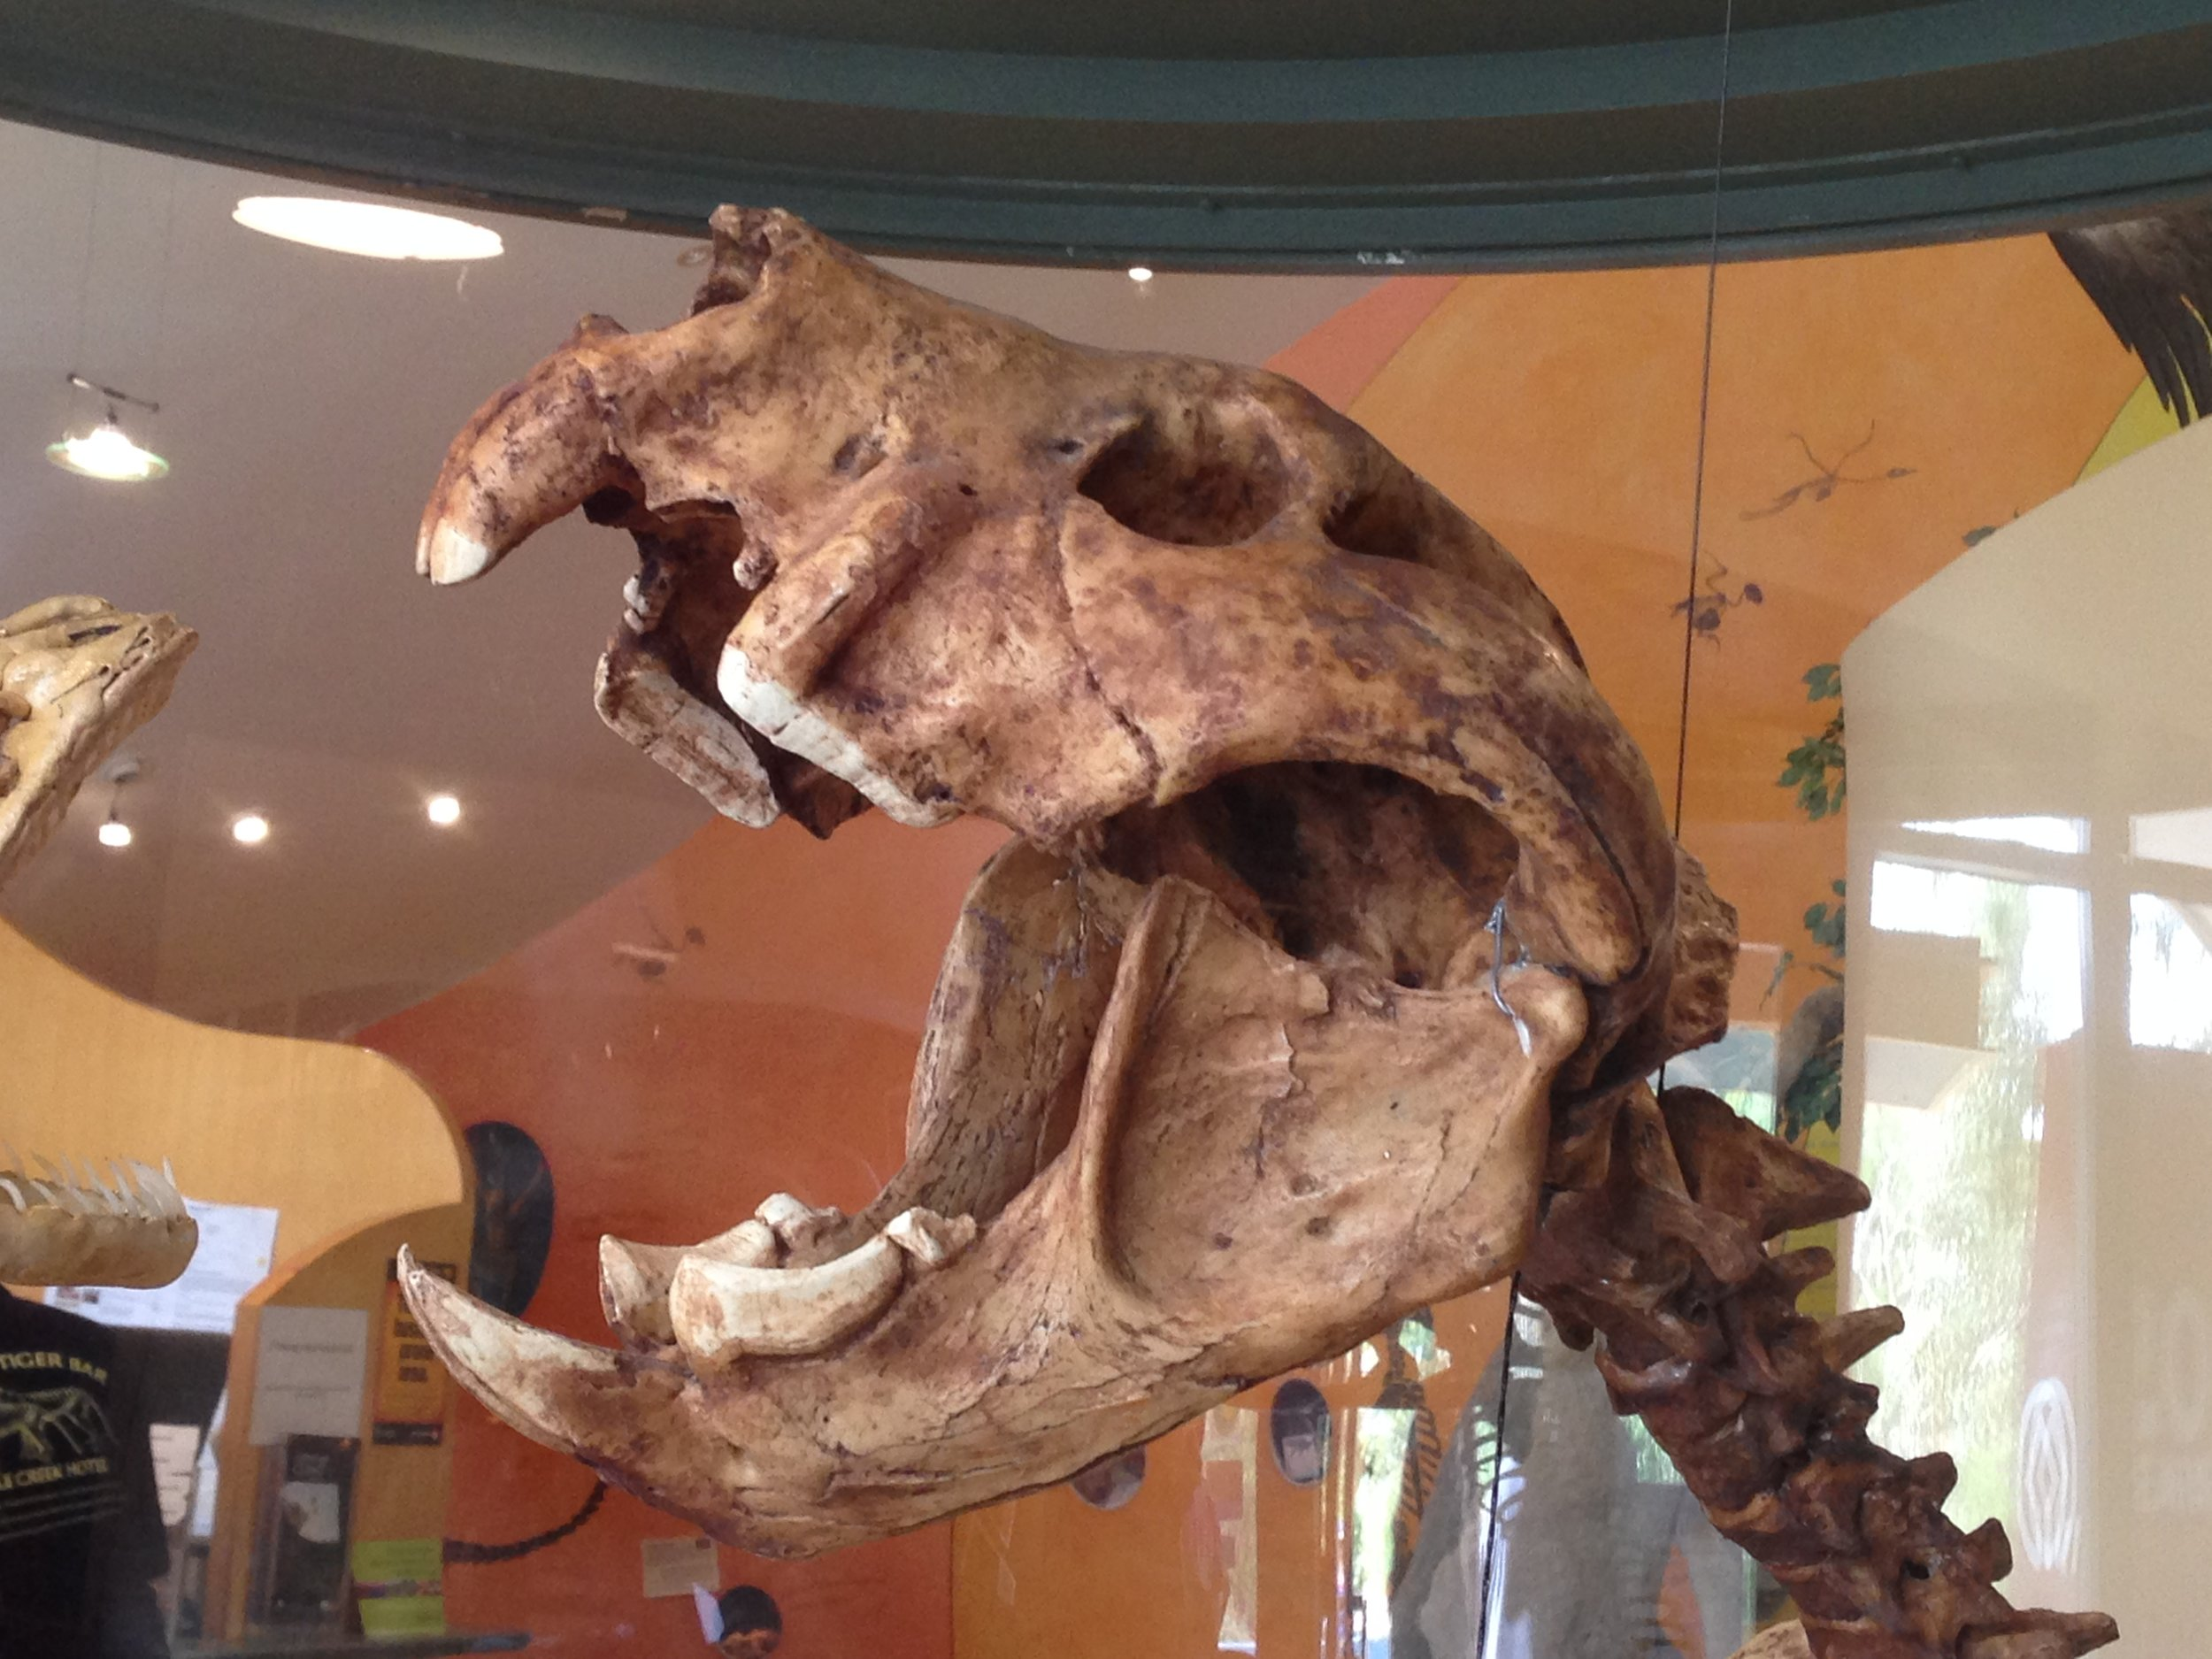 """""""Mounted display of Thylacoleo carnifex at the Wonambi Fossil Centre, Naracoorte Caves National Park, South Australia."""" Wikicommons."""